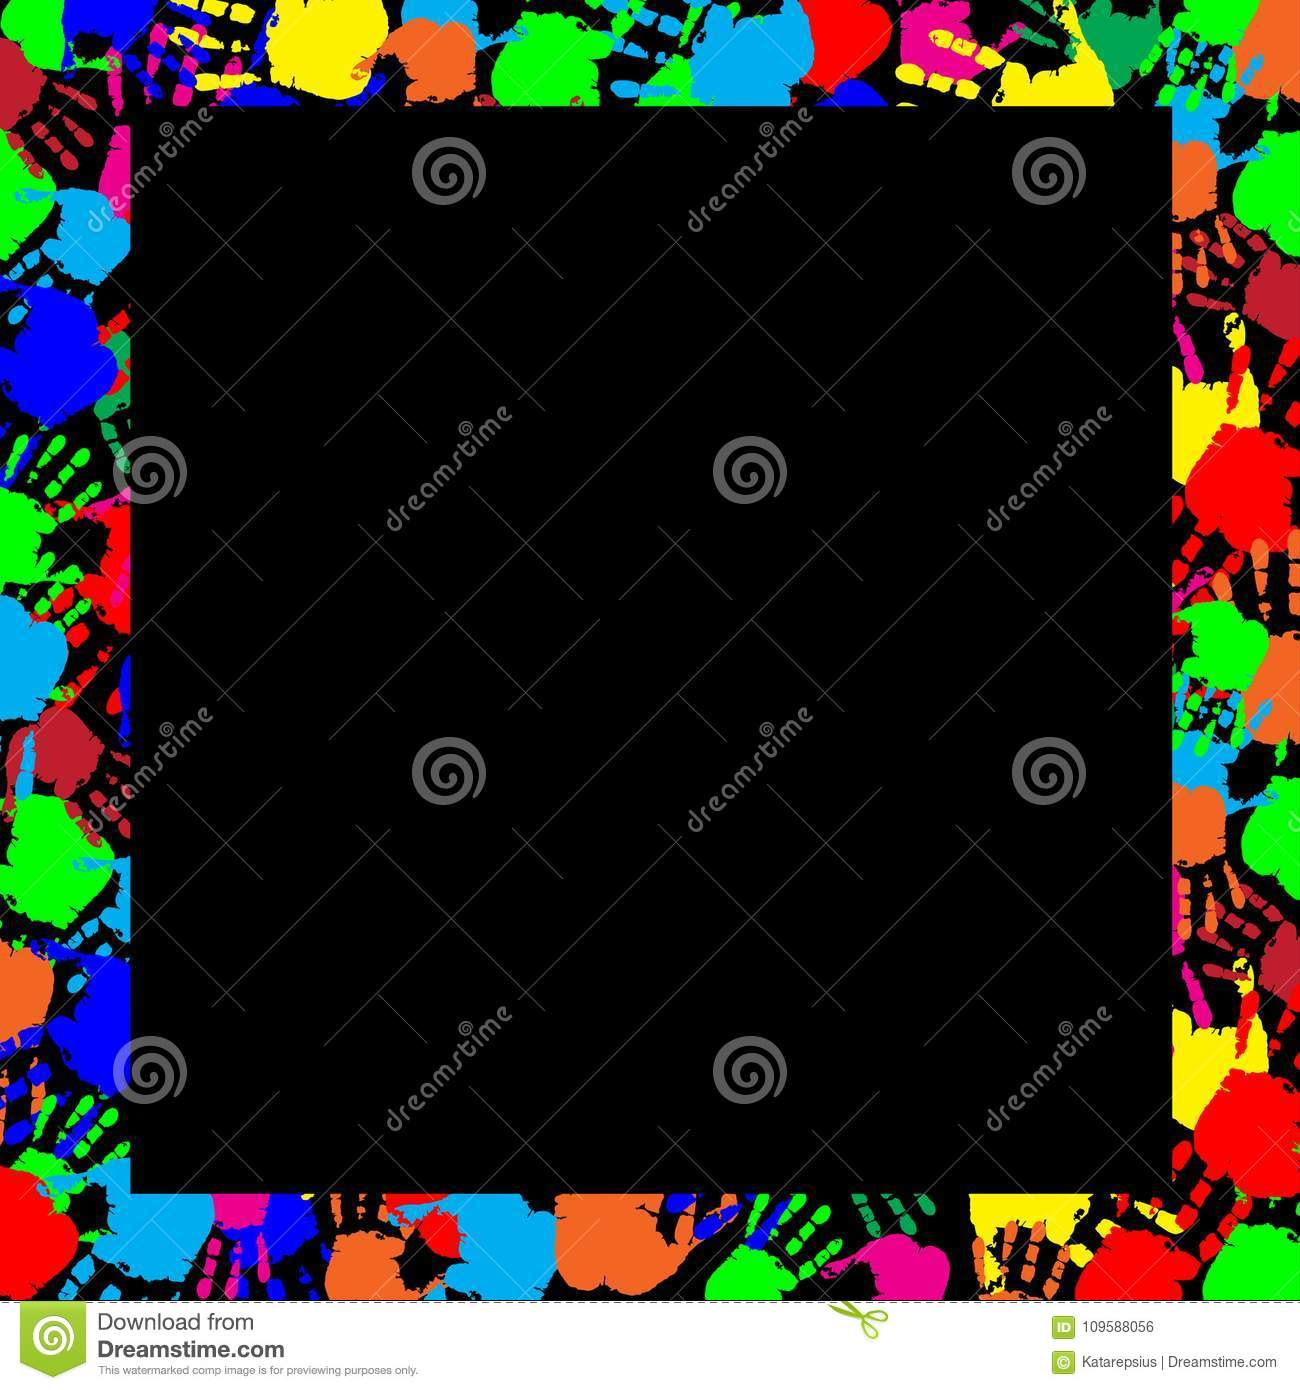 Multicolored Handprints Border Isolated On Black Background Stock